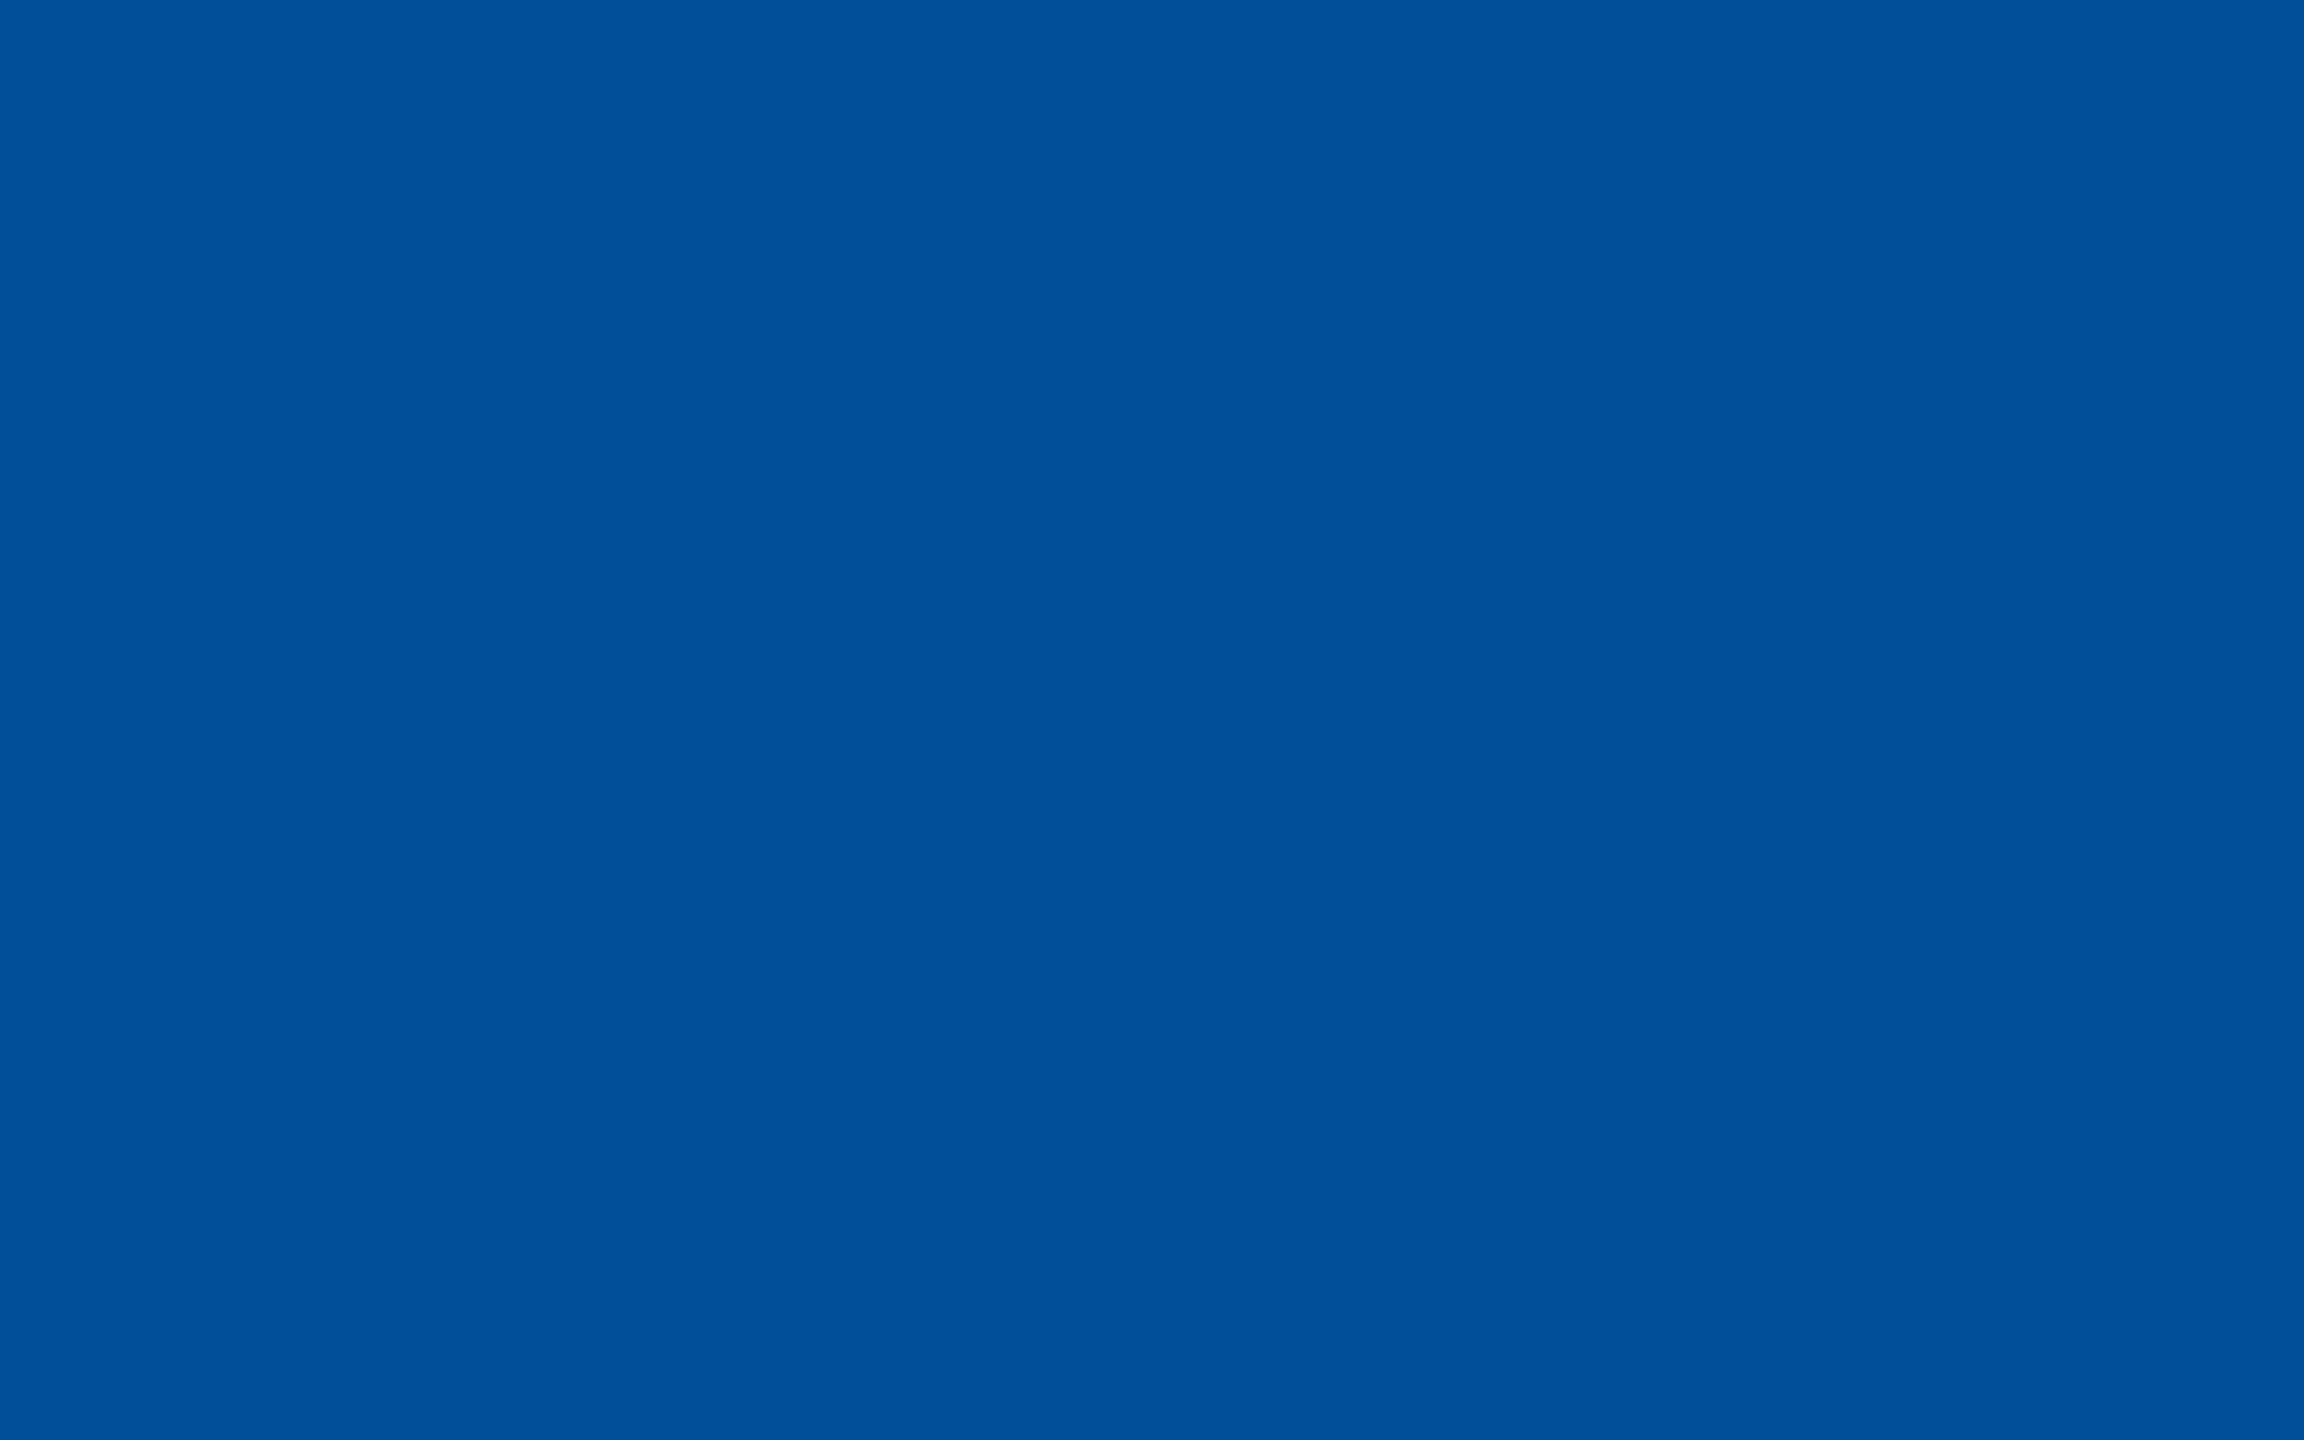 2304x1440 USAFA Blue Solid Color Background